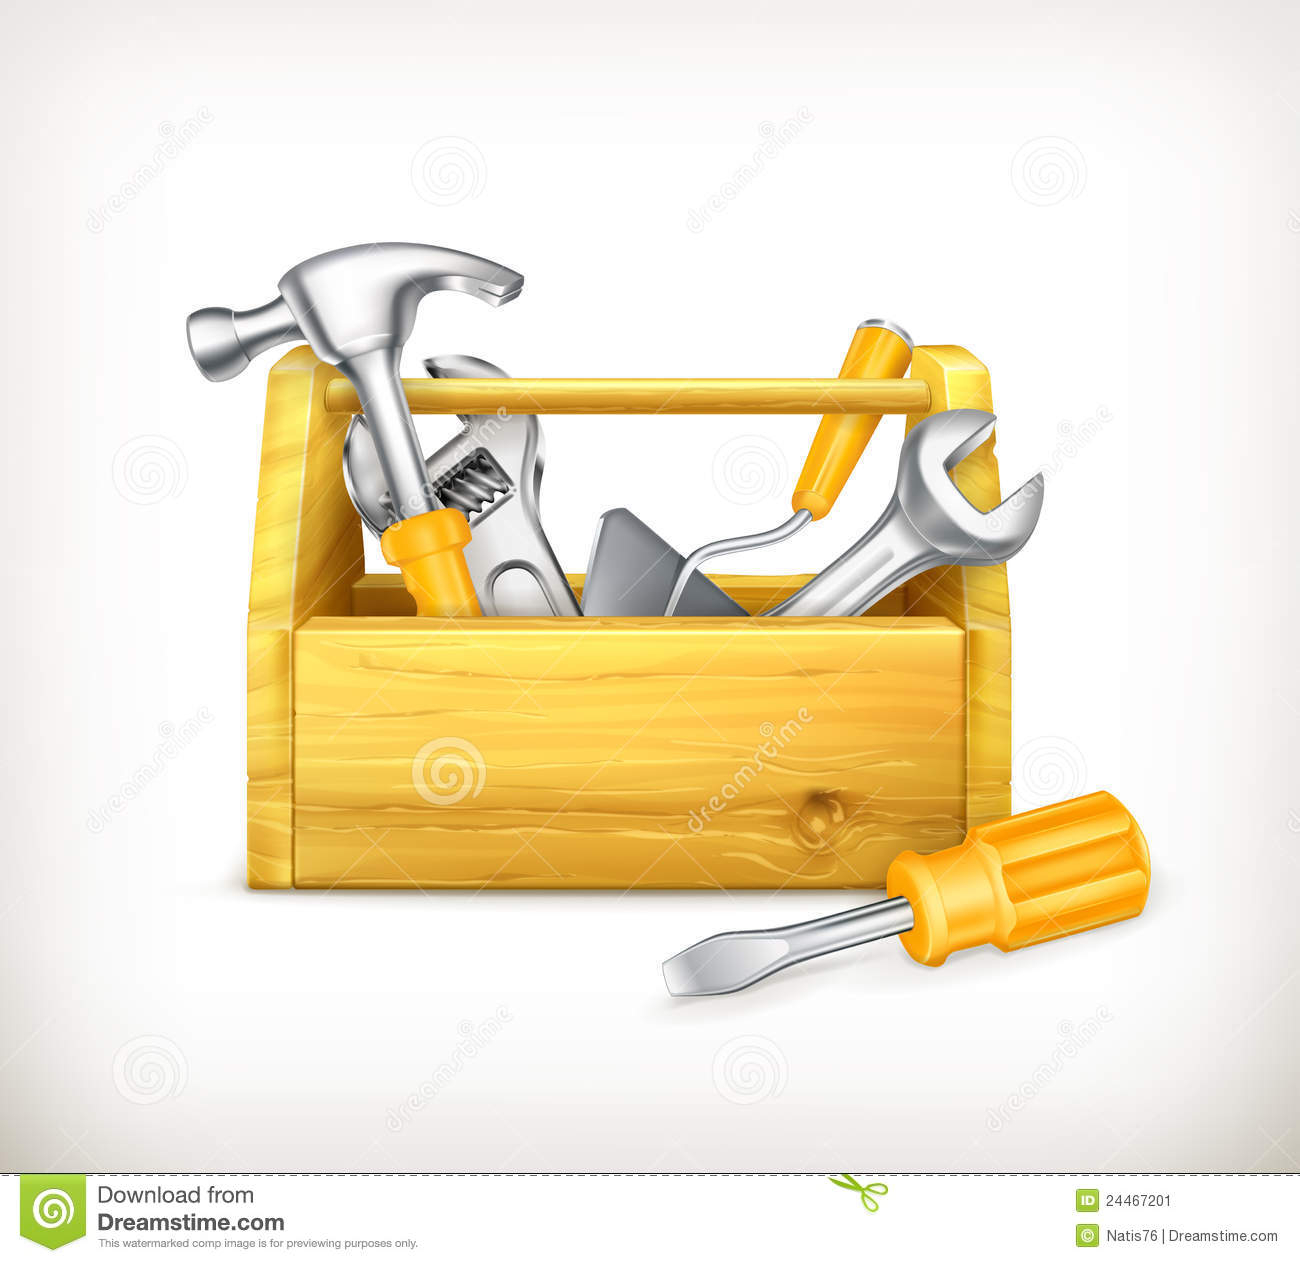 ... toolbox clipart displaying 19 images for wood toolbox clipart toolbar